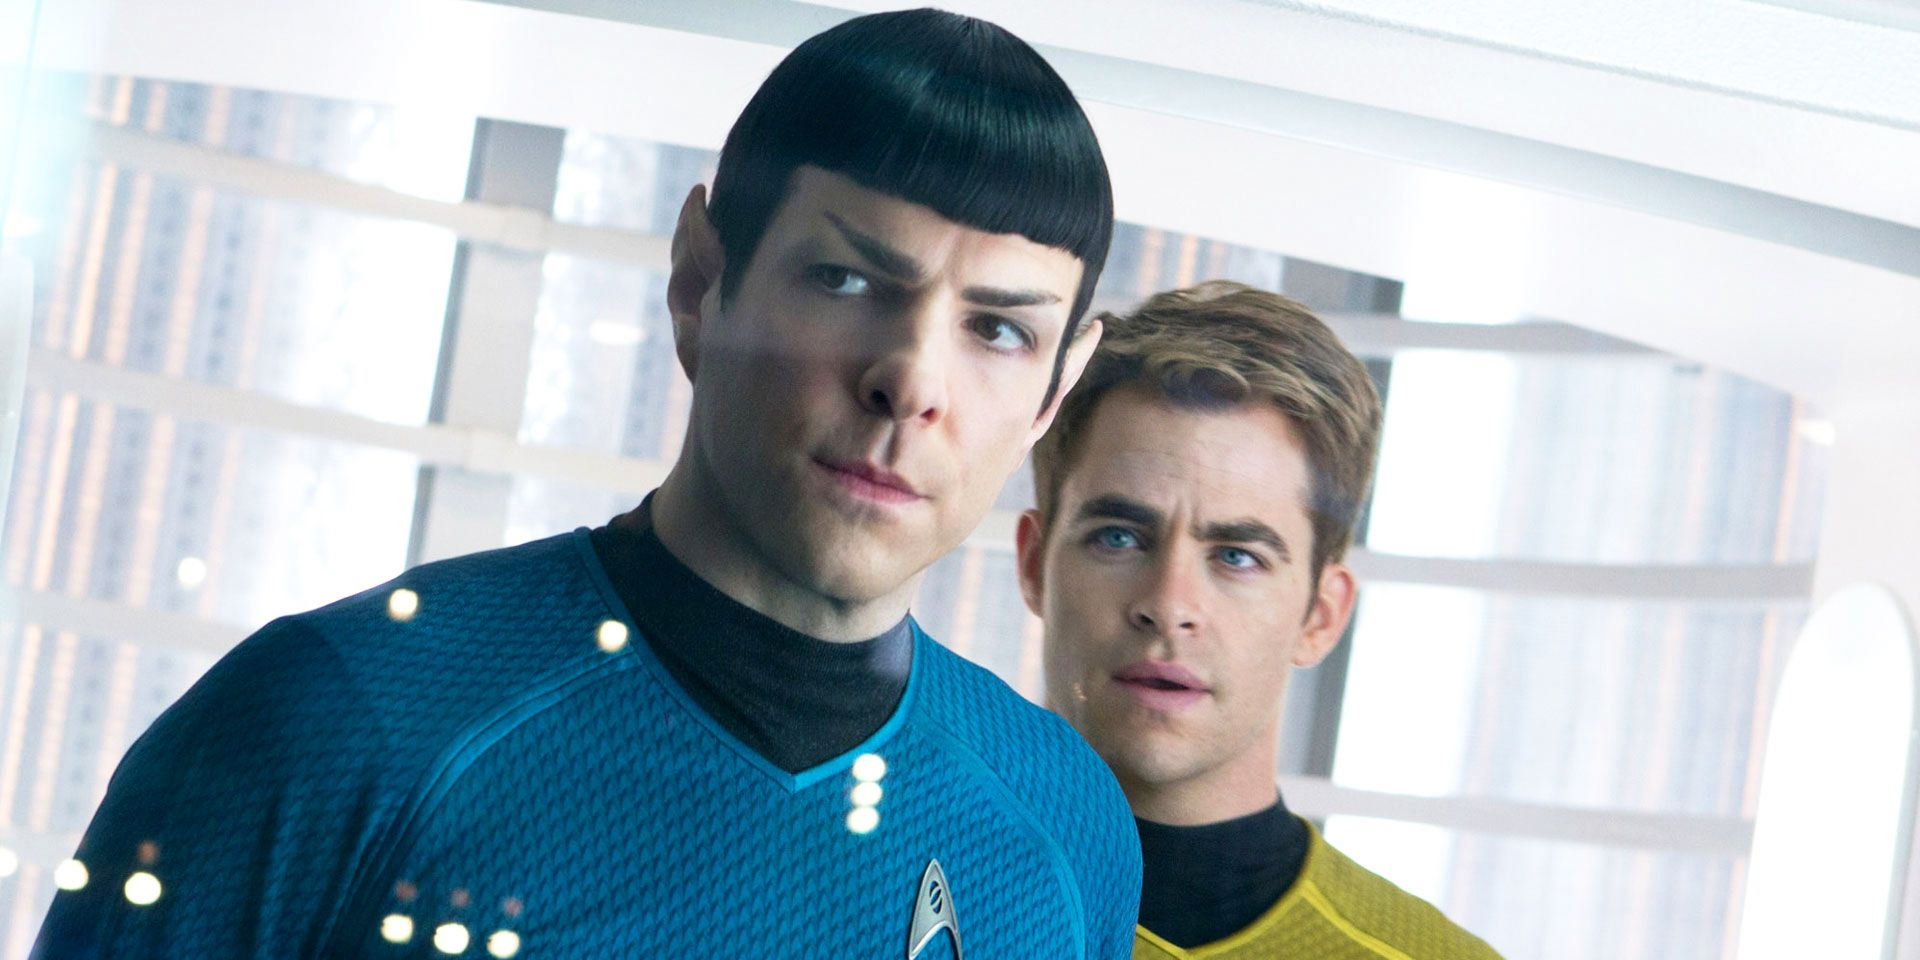 Star Trek into Darkness Spock and Kirk